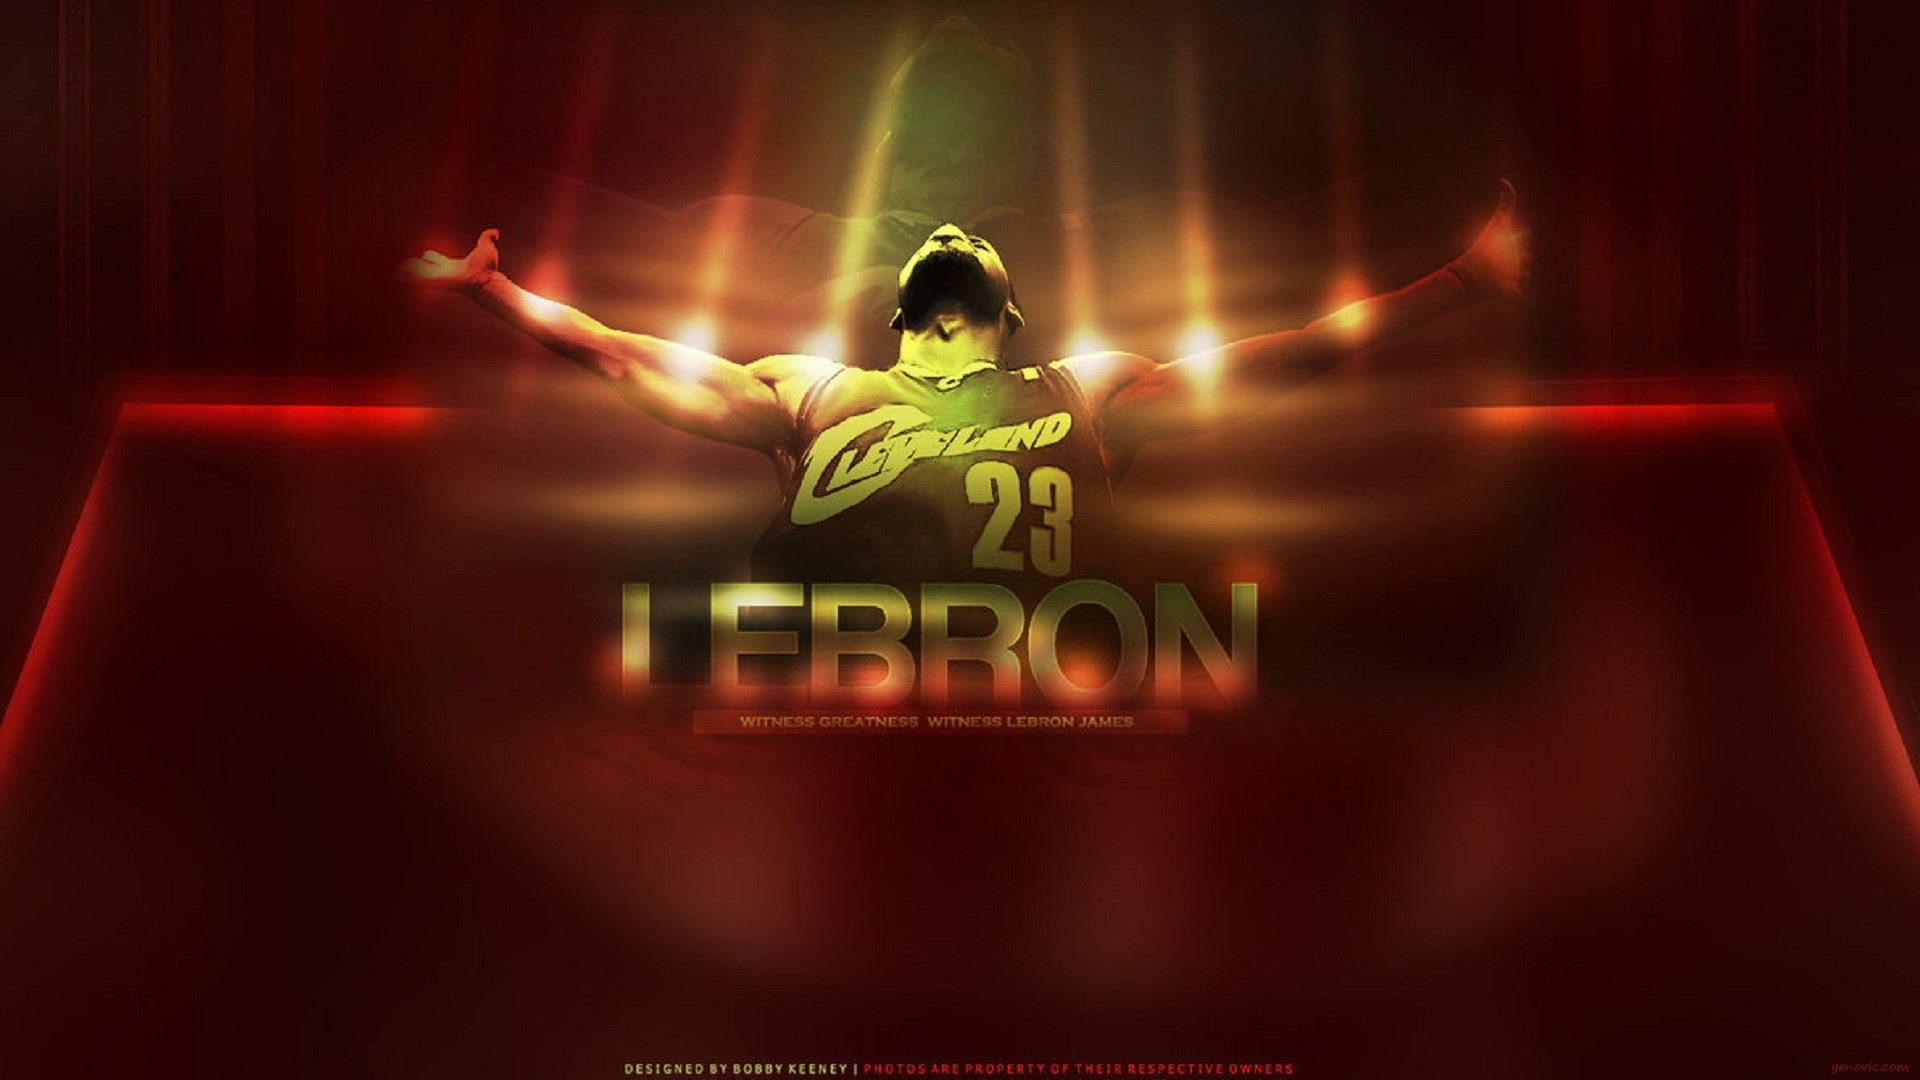 1920x1080 Lebron James Cleveland 23 Wallpapers.